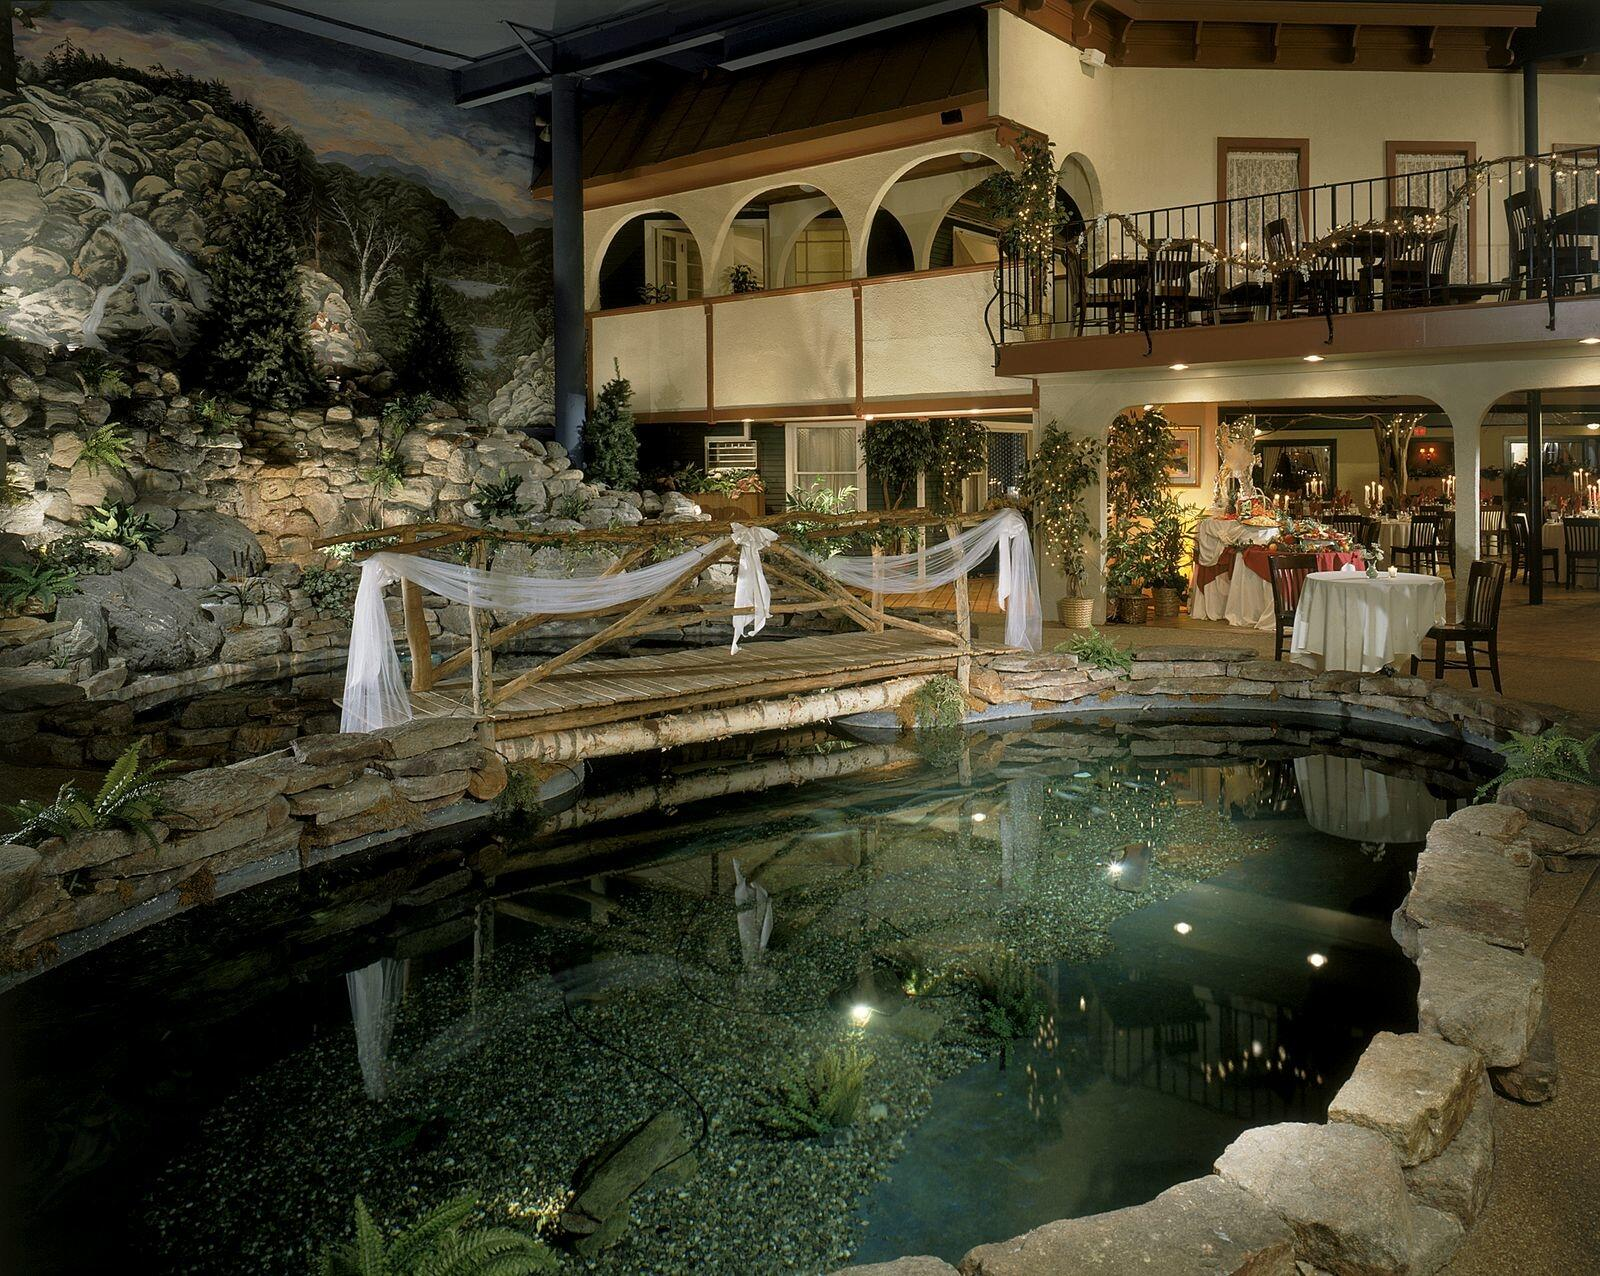 Koi pond with realistic rock outcroppings in courtyard